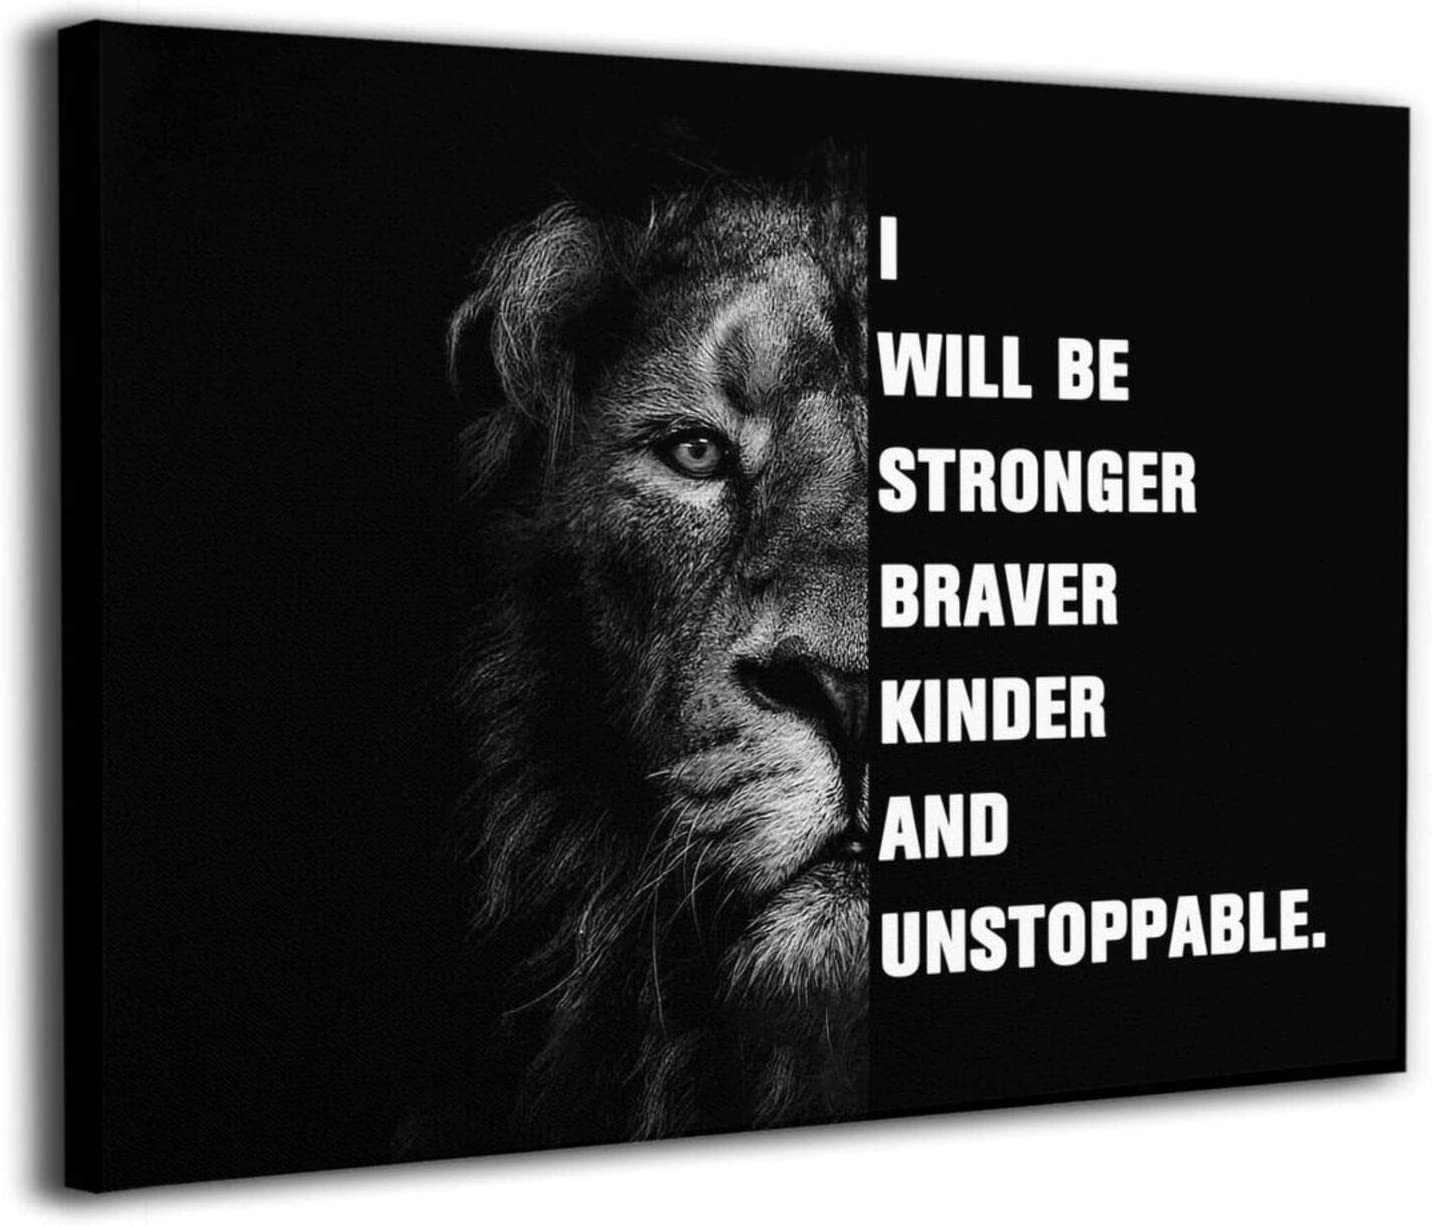 Sinlley Lion Inspirational Wall Art, Canvas Paintings Office Decor, 16x12 Inches Motivational Wood Framed Wall Decor Wall Decoration